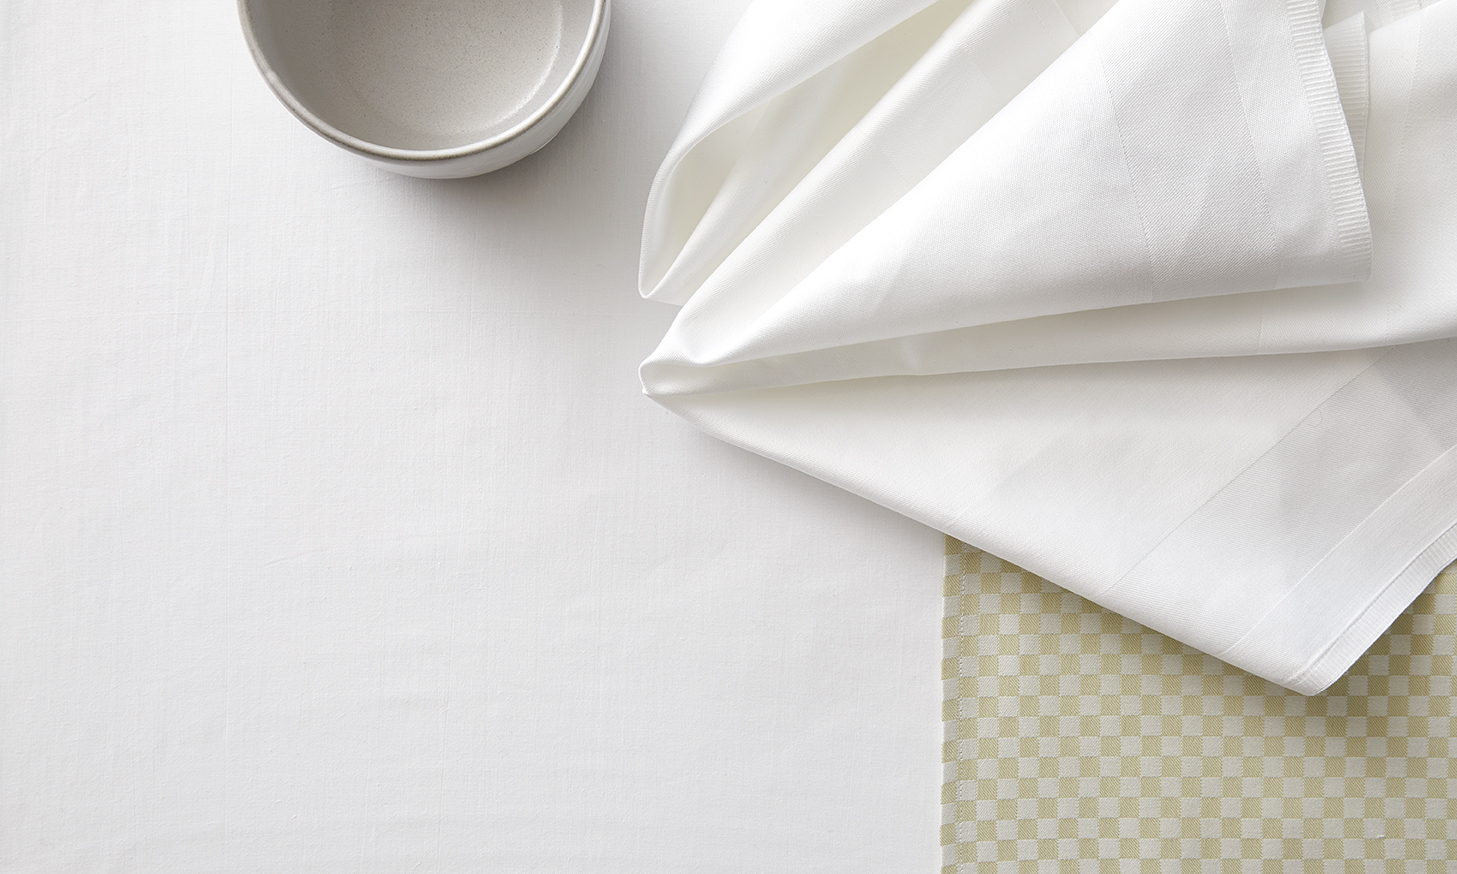 Revival_New_York_Luxury_Table_Linens_Napkins_Custom_Products_Hospitality_Hotels